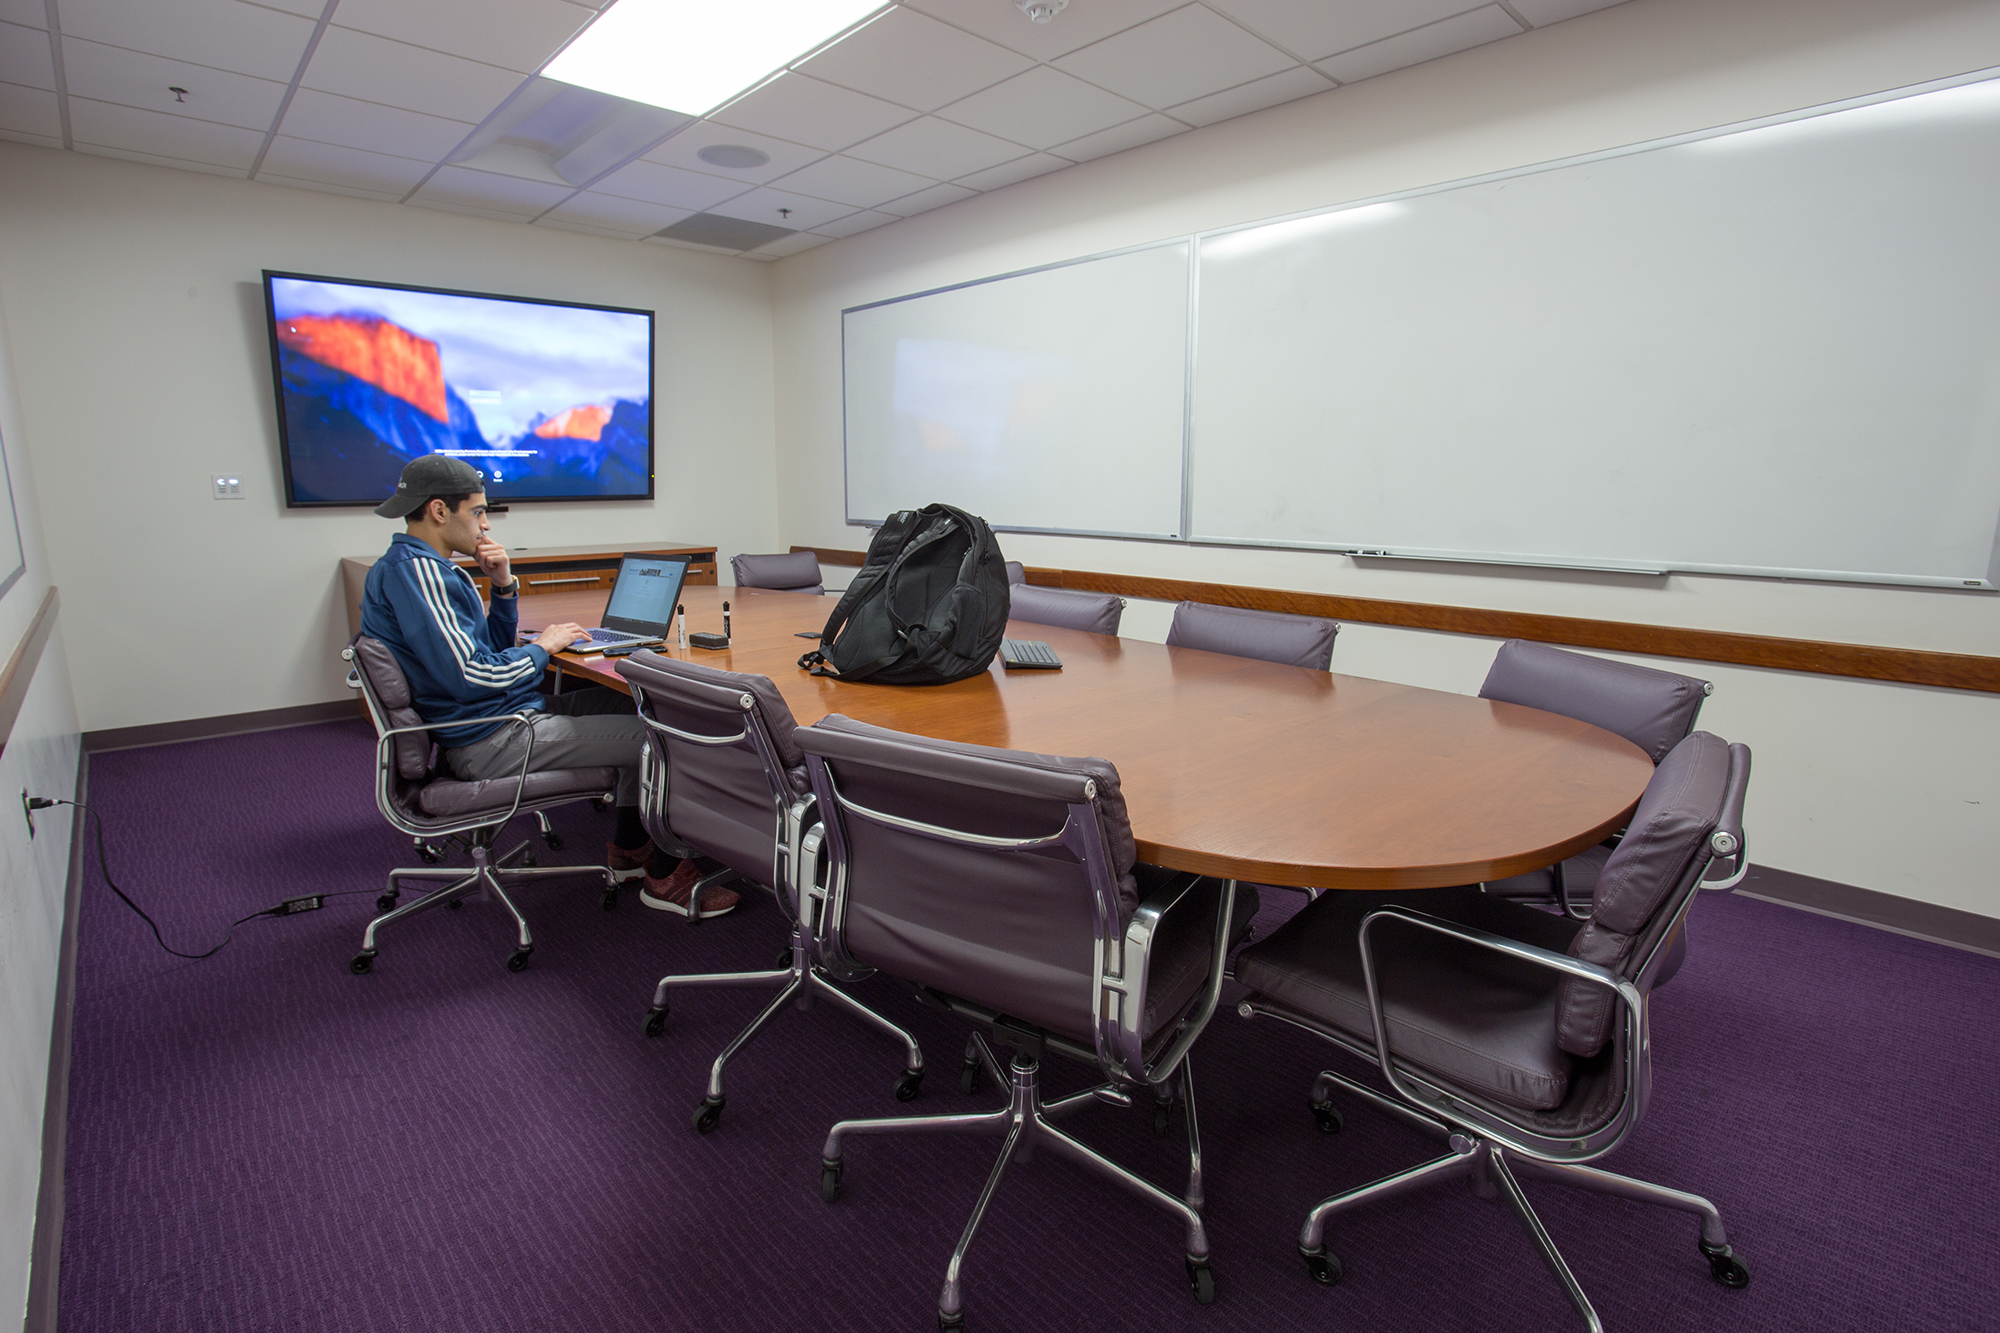 A student sitting at a long conference table working on a wall mounted display